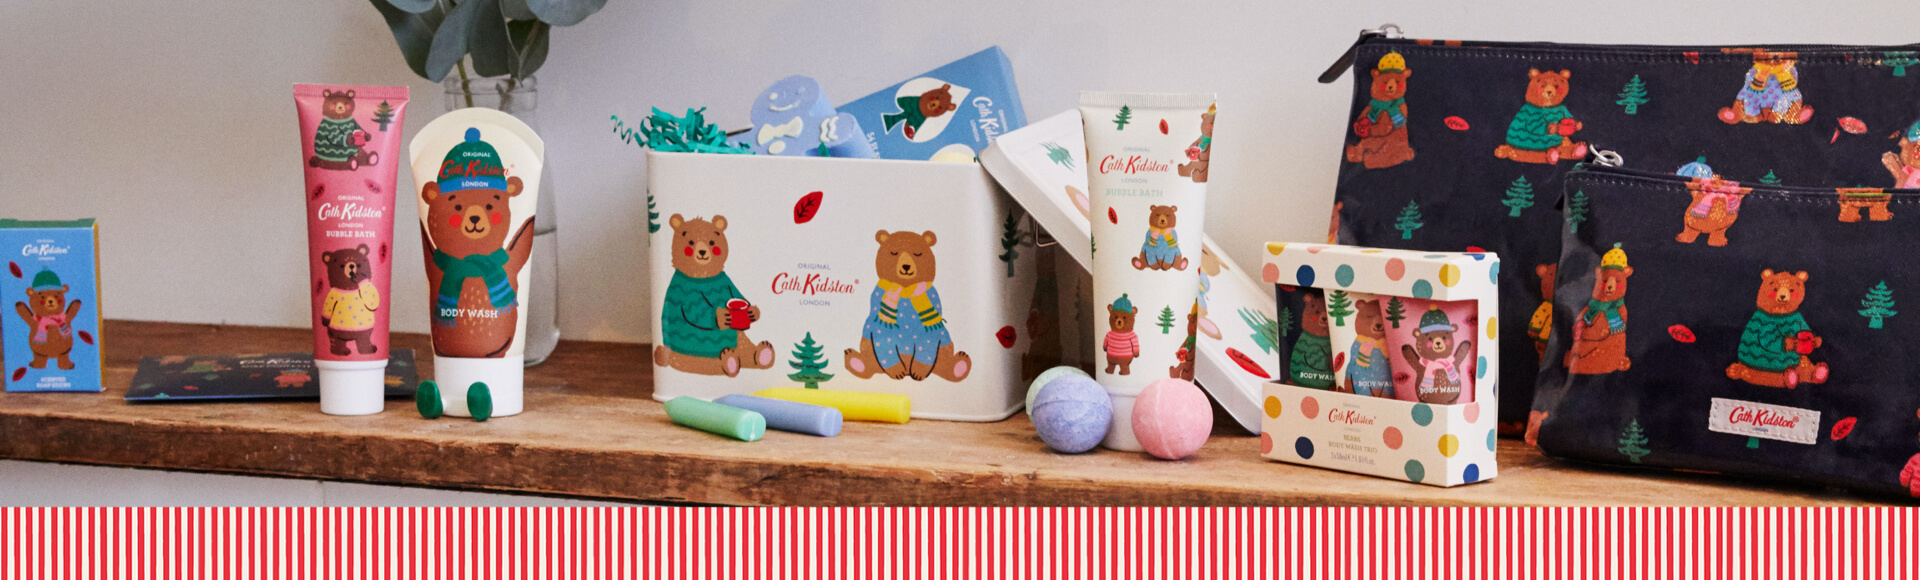 Welcome to our festive gift finder - Cath Kidston